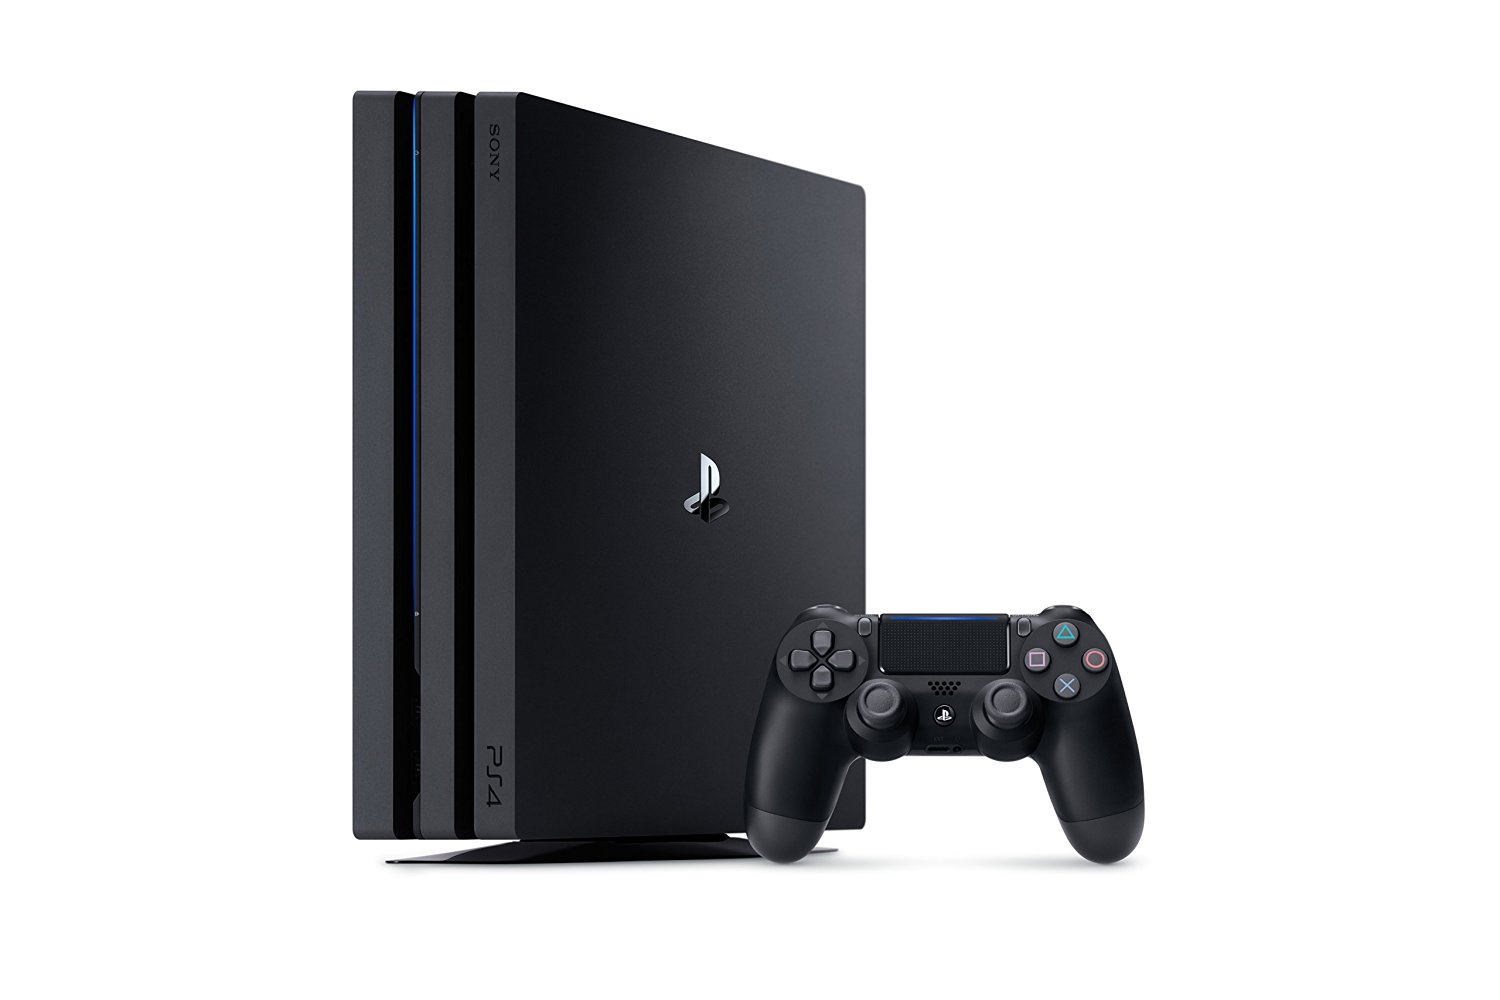 ps4 pro release preis und hardware specs zur. Black Bedroom Furniture Sets. Home Design Ideas